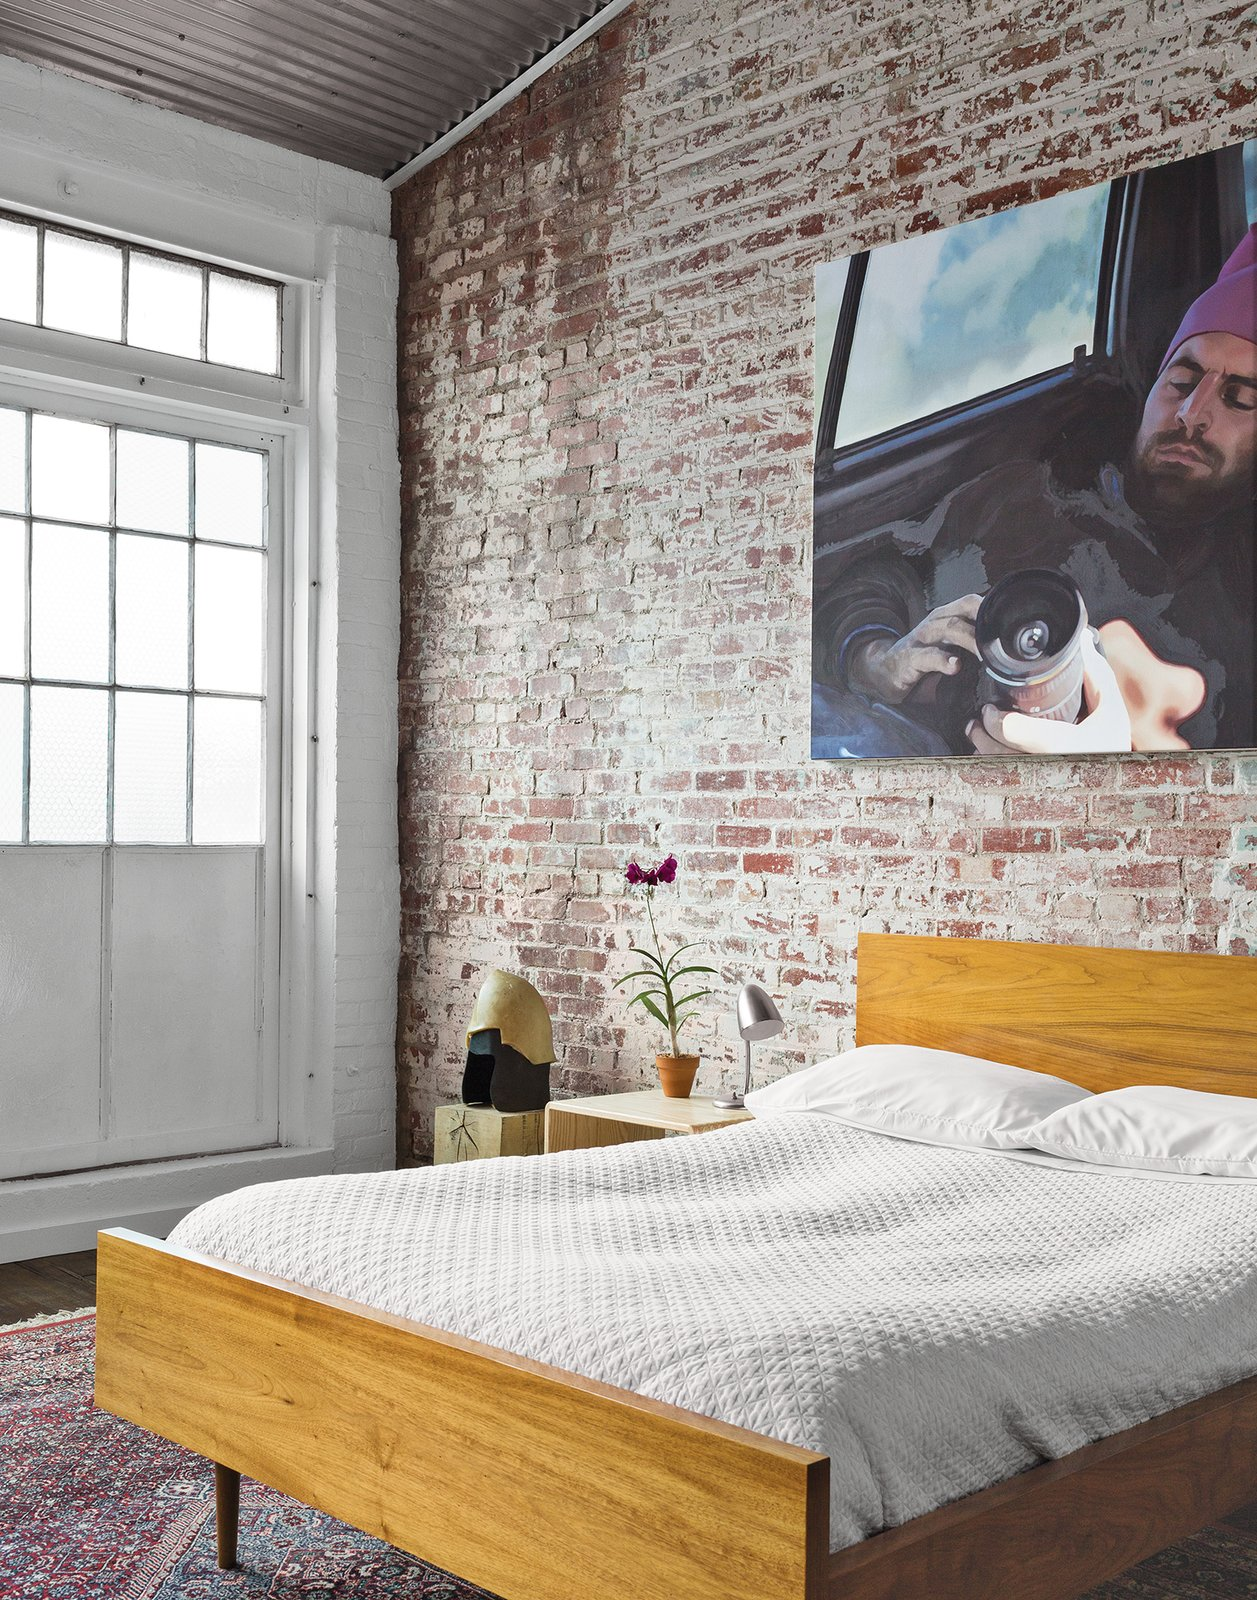 In the guest bedroom, a painting by Monique Crine hangs on the original brick wall above a Miles & May bed and side table. The rug is from ABC Carpet & Home.  20+ Modern Warehouse and Garages Conversions by Zachary Edelson from A Design Duo Takes Over A Whole Factory